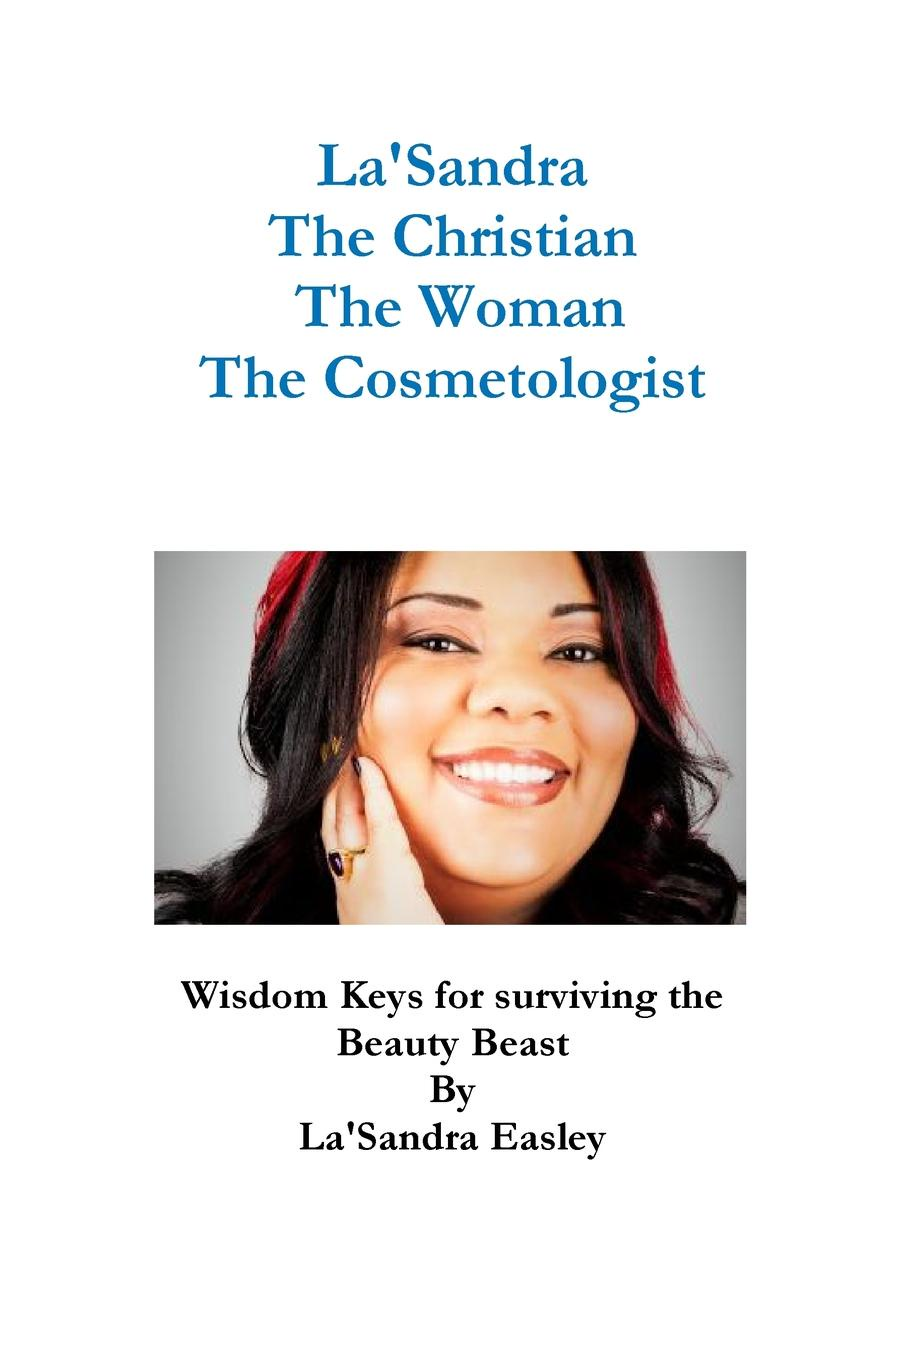 La'Sandra Easley La.Sandra, The Christian, The Woman, The Cosmetologist beauty and the beast